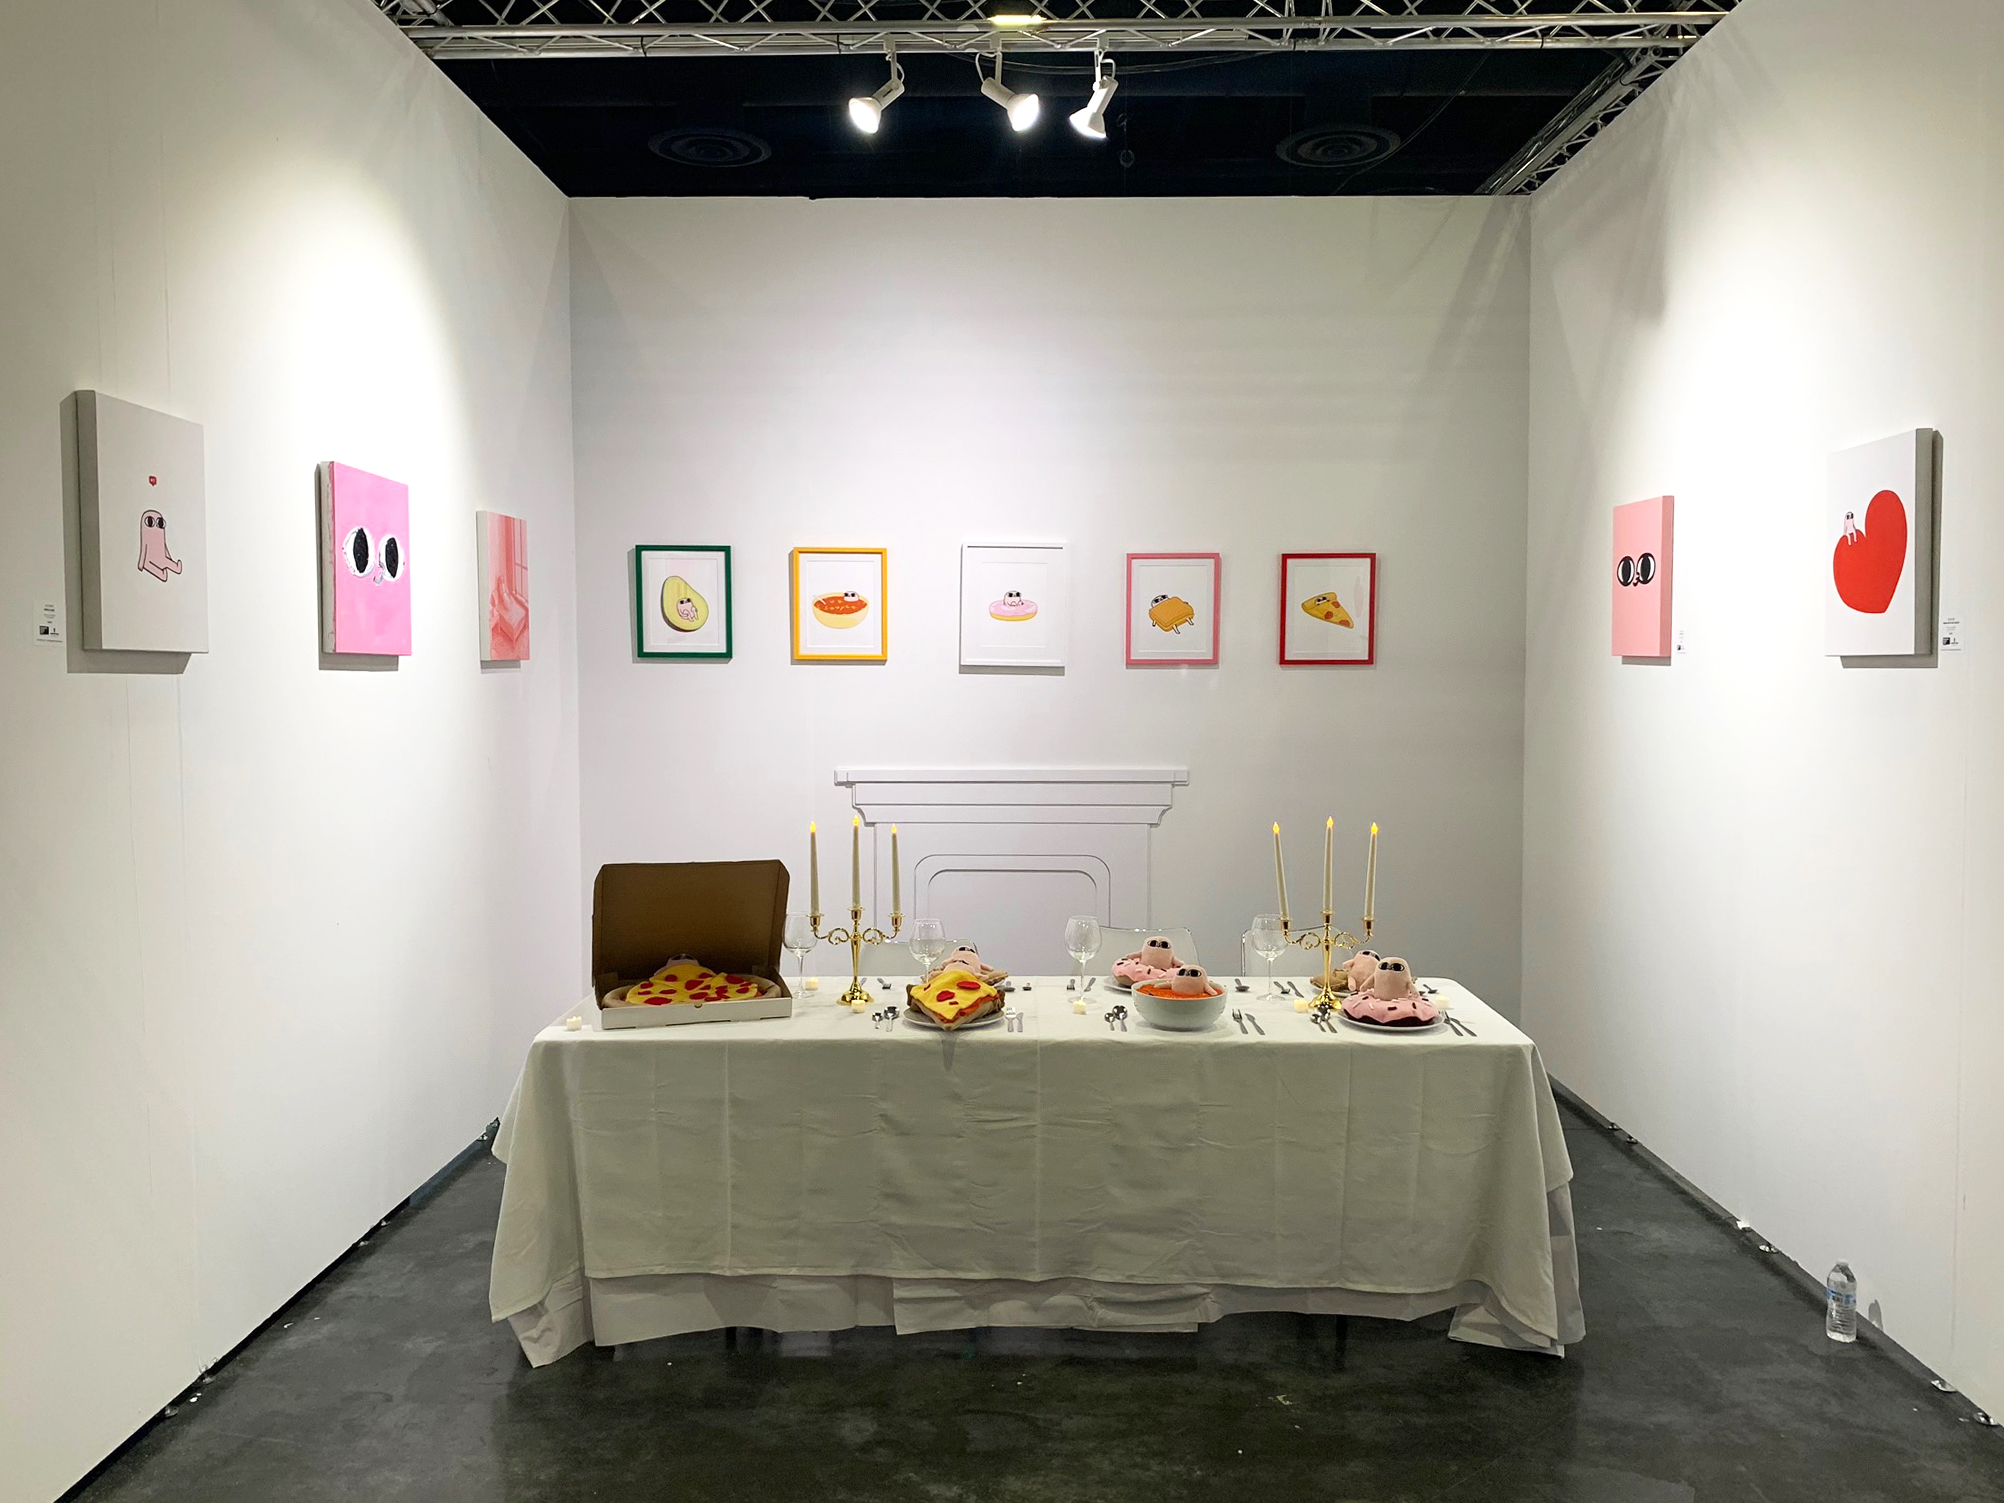 Ketnipz' original paintings and limited edition prints exhibited at Art Palm Beach 2019